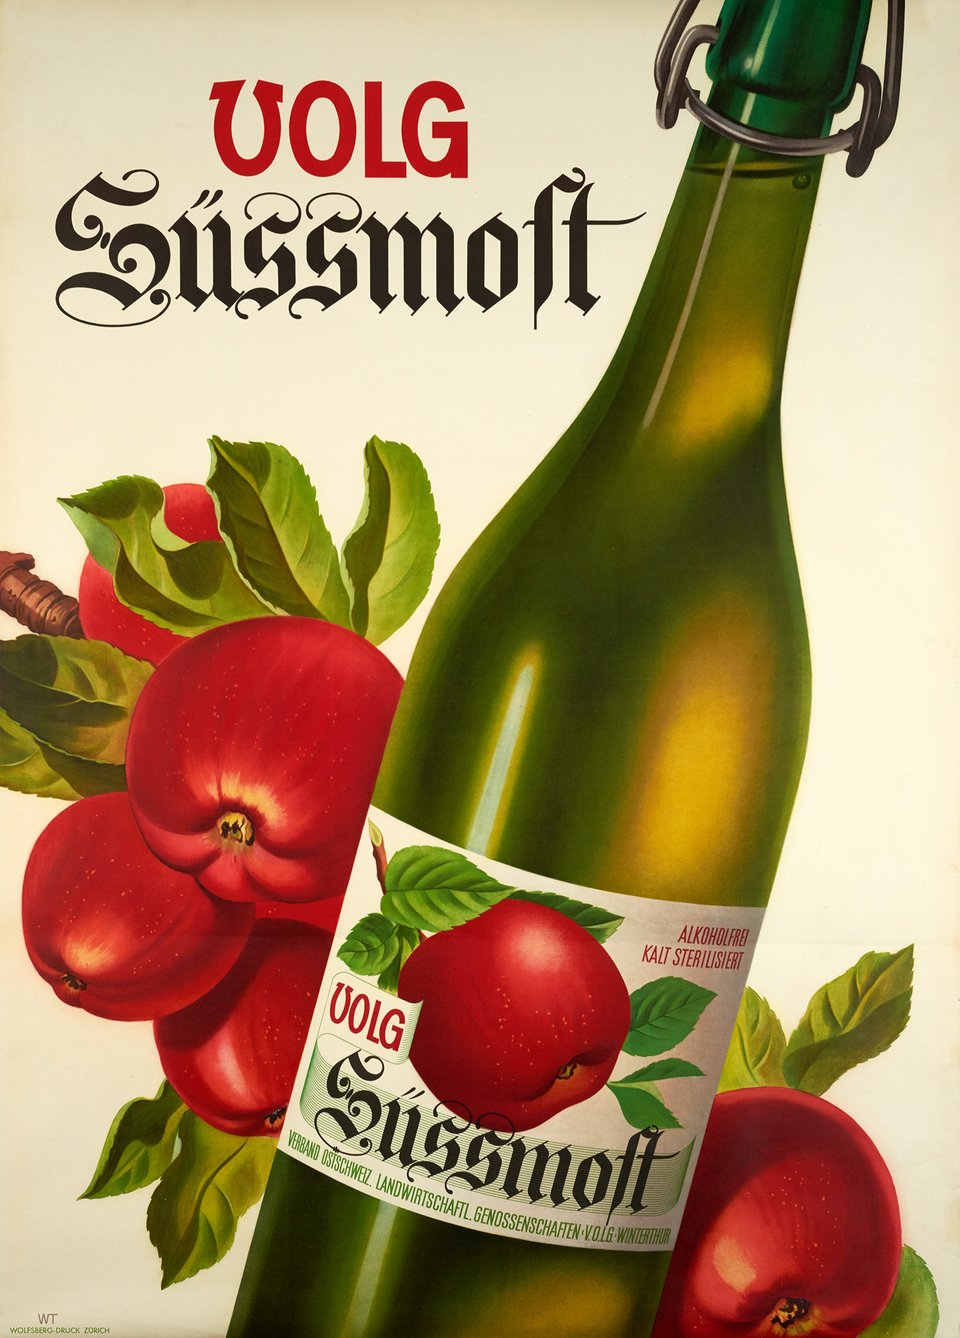 Volg Süssmost – Affiche ancienne – Willi TRAPP – 1941